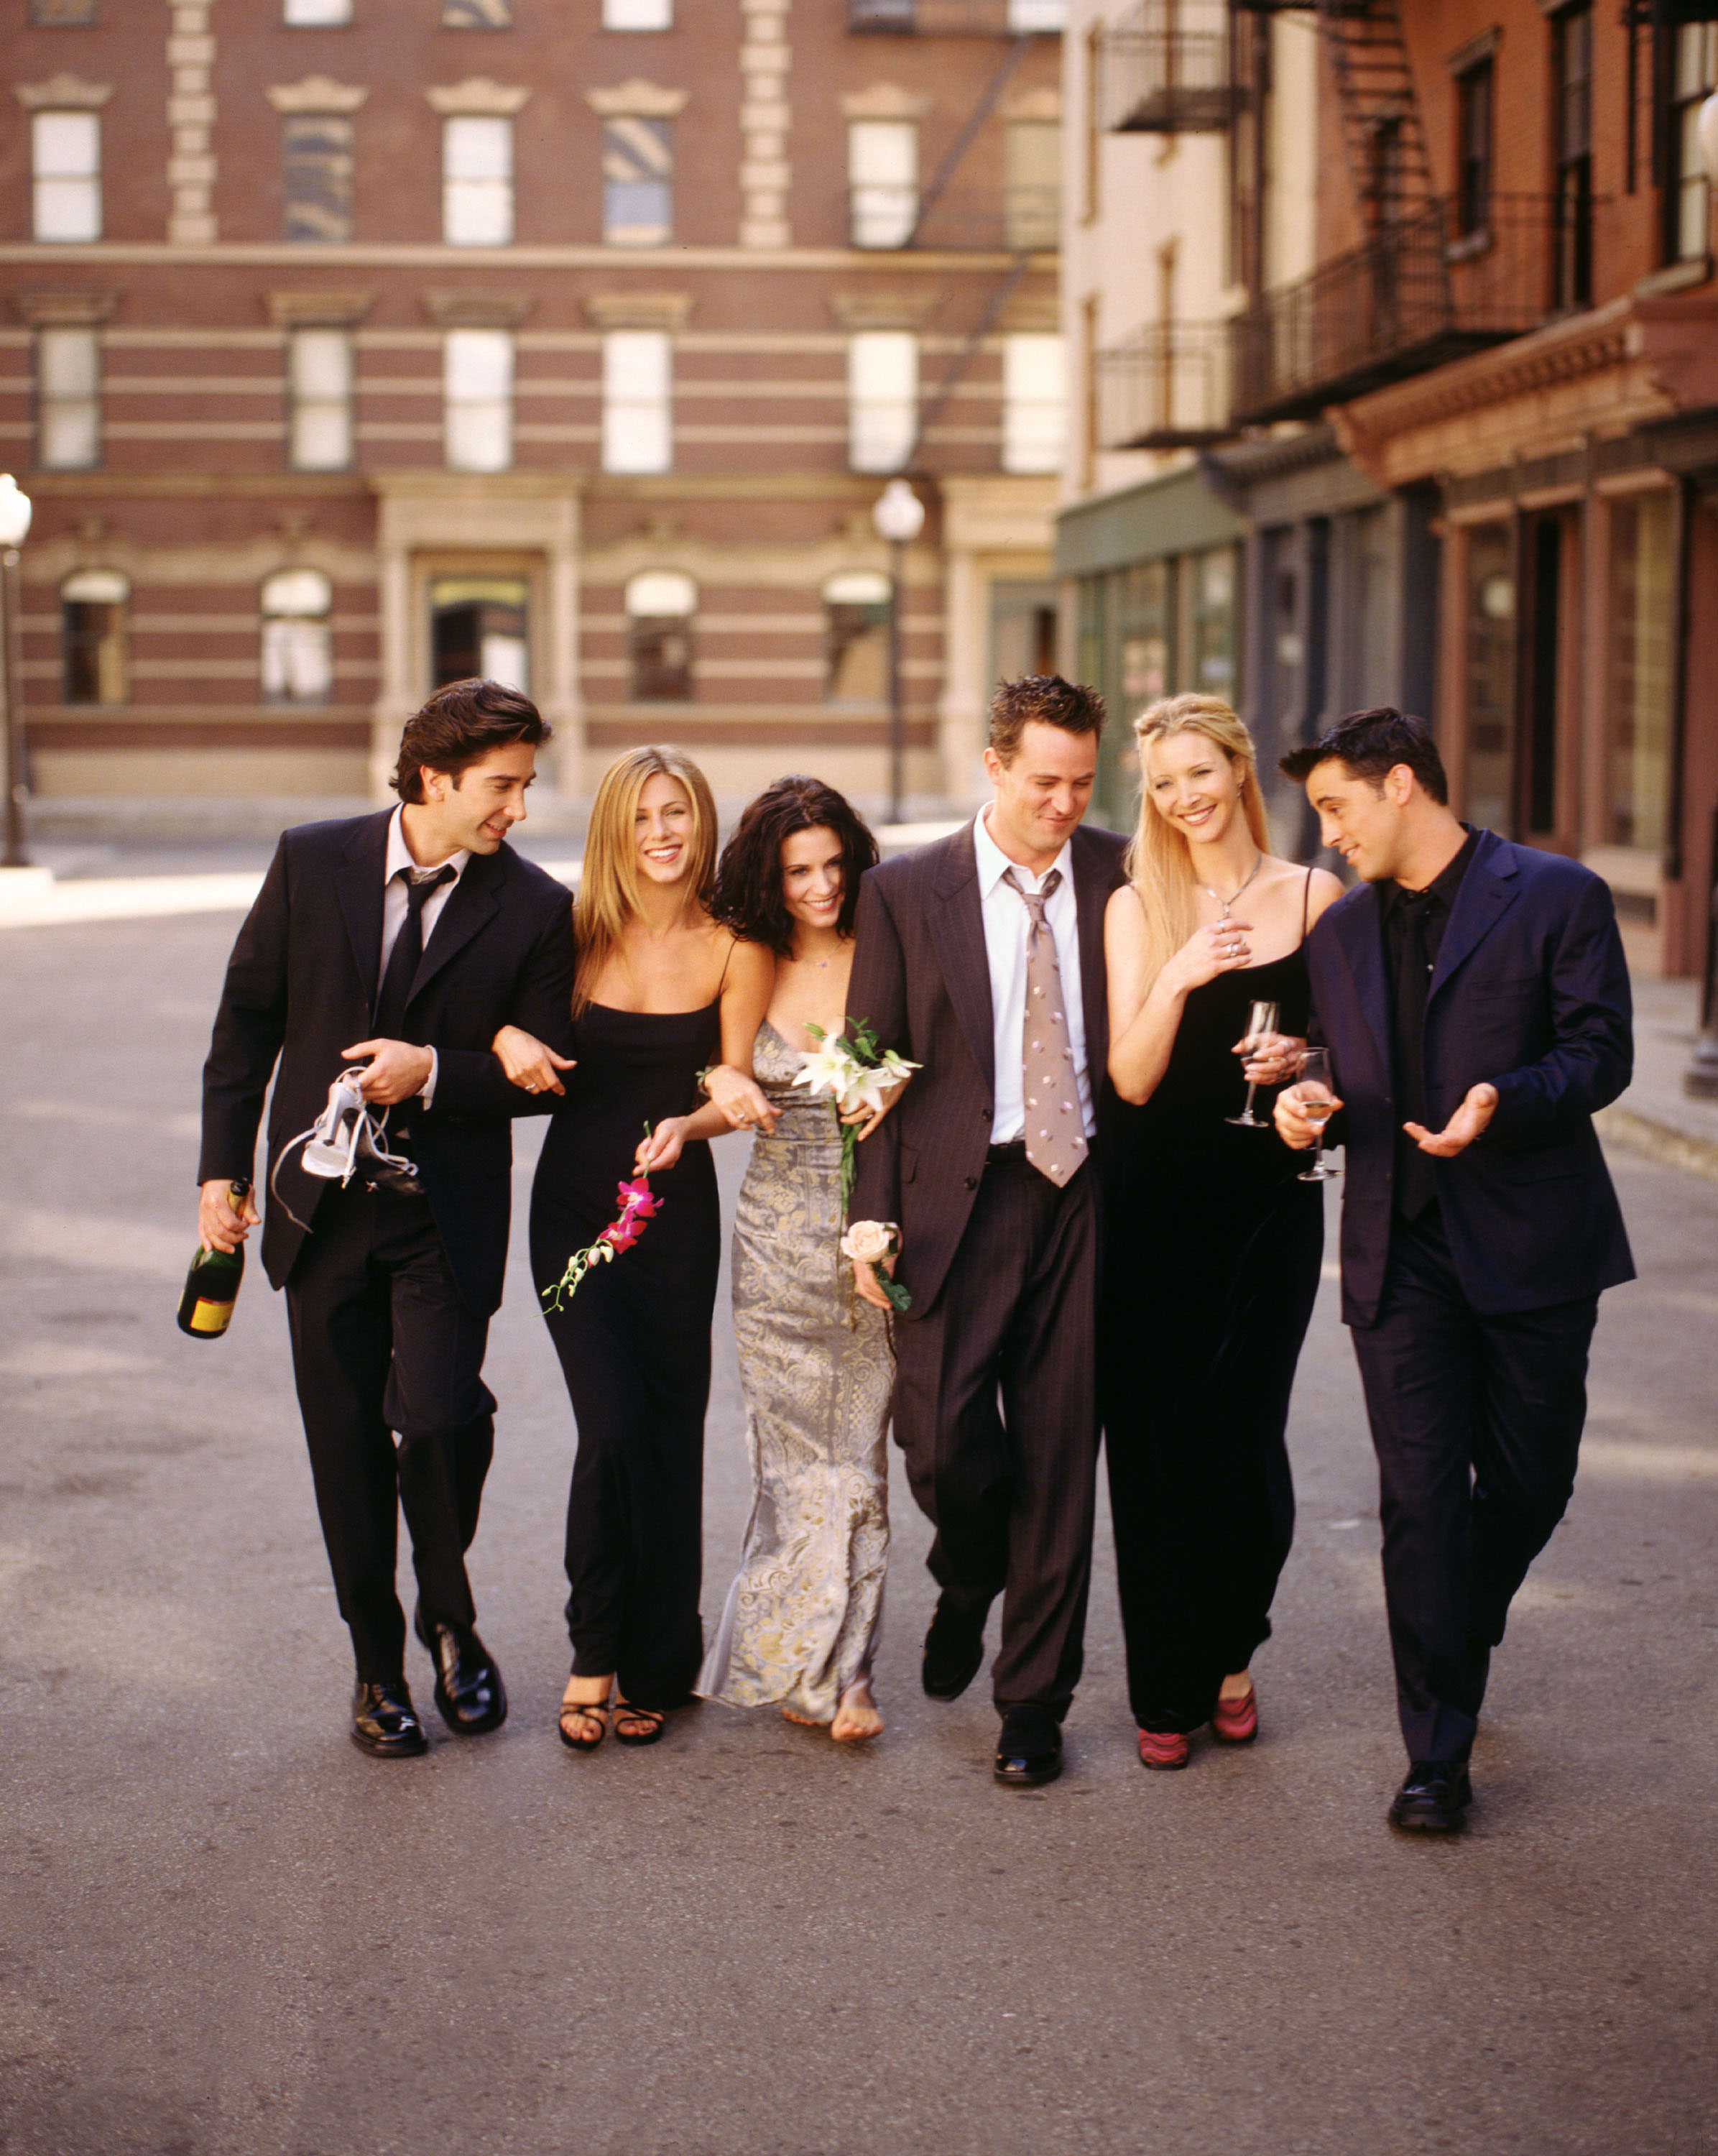 'Friends' reunion special set for HBO Max